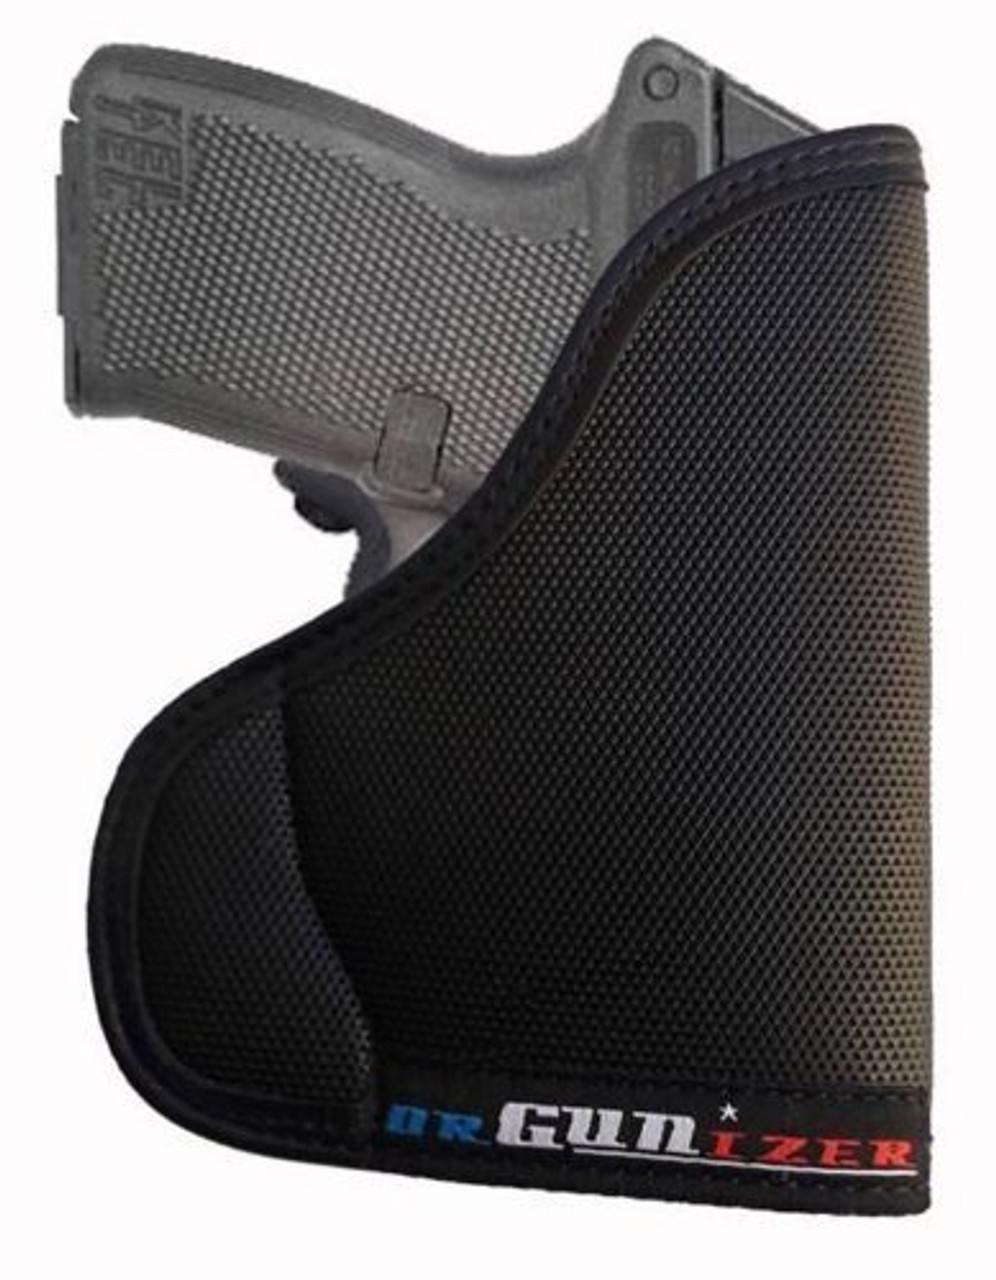 Garrison Grip Custom Fit Leather-Trimmed Pocket Holster Concealed Carry Comfort, Kel-Tec P32 w/Crimson Trace LG-430 (C)